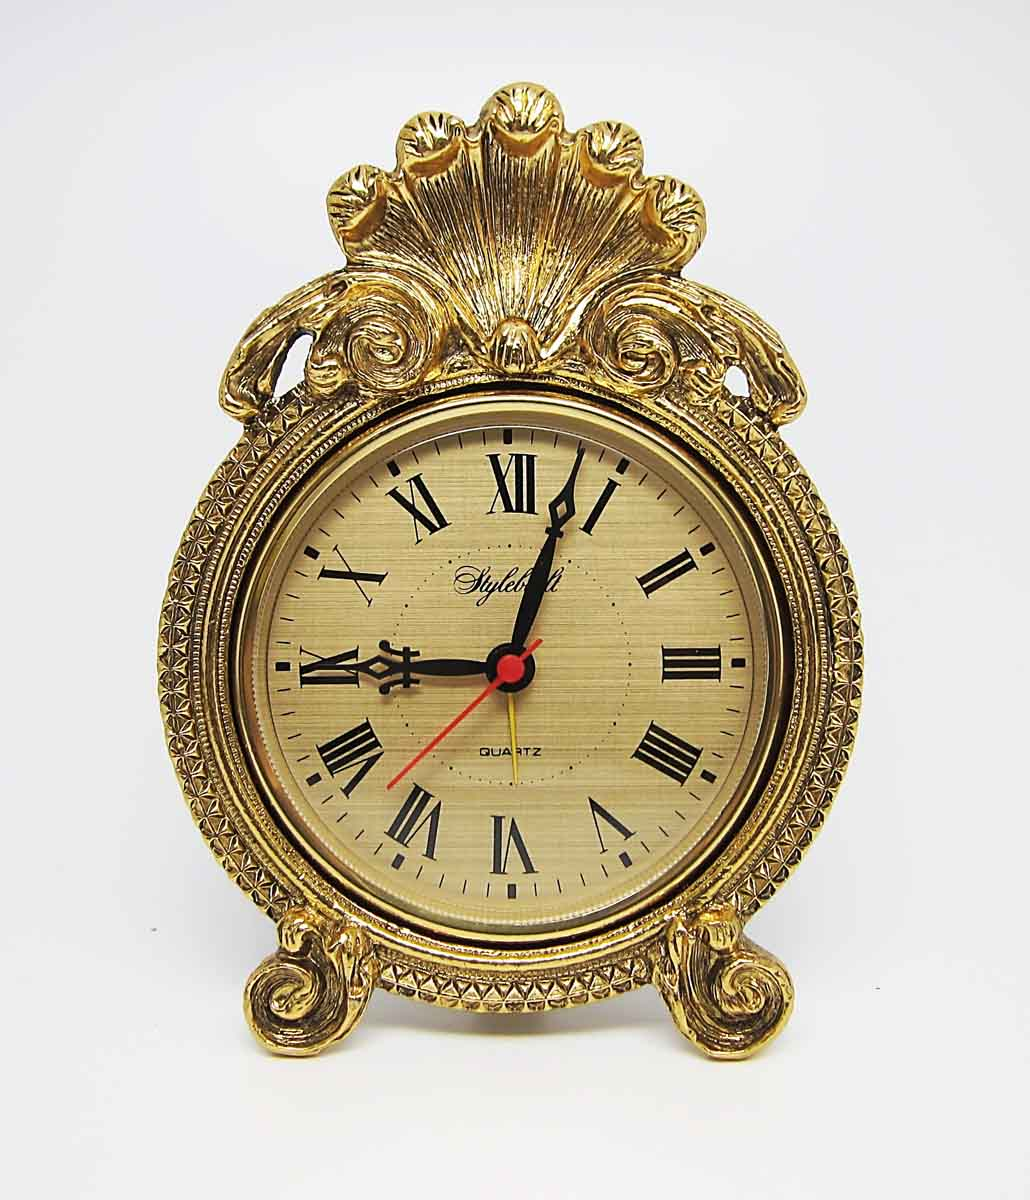 Antique Rococo Style Desk Clock with Shell Design - Antique Rococo Style Desk Clock With Shell Design Olde Good Things